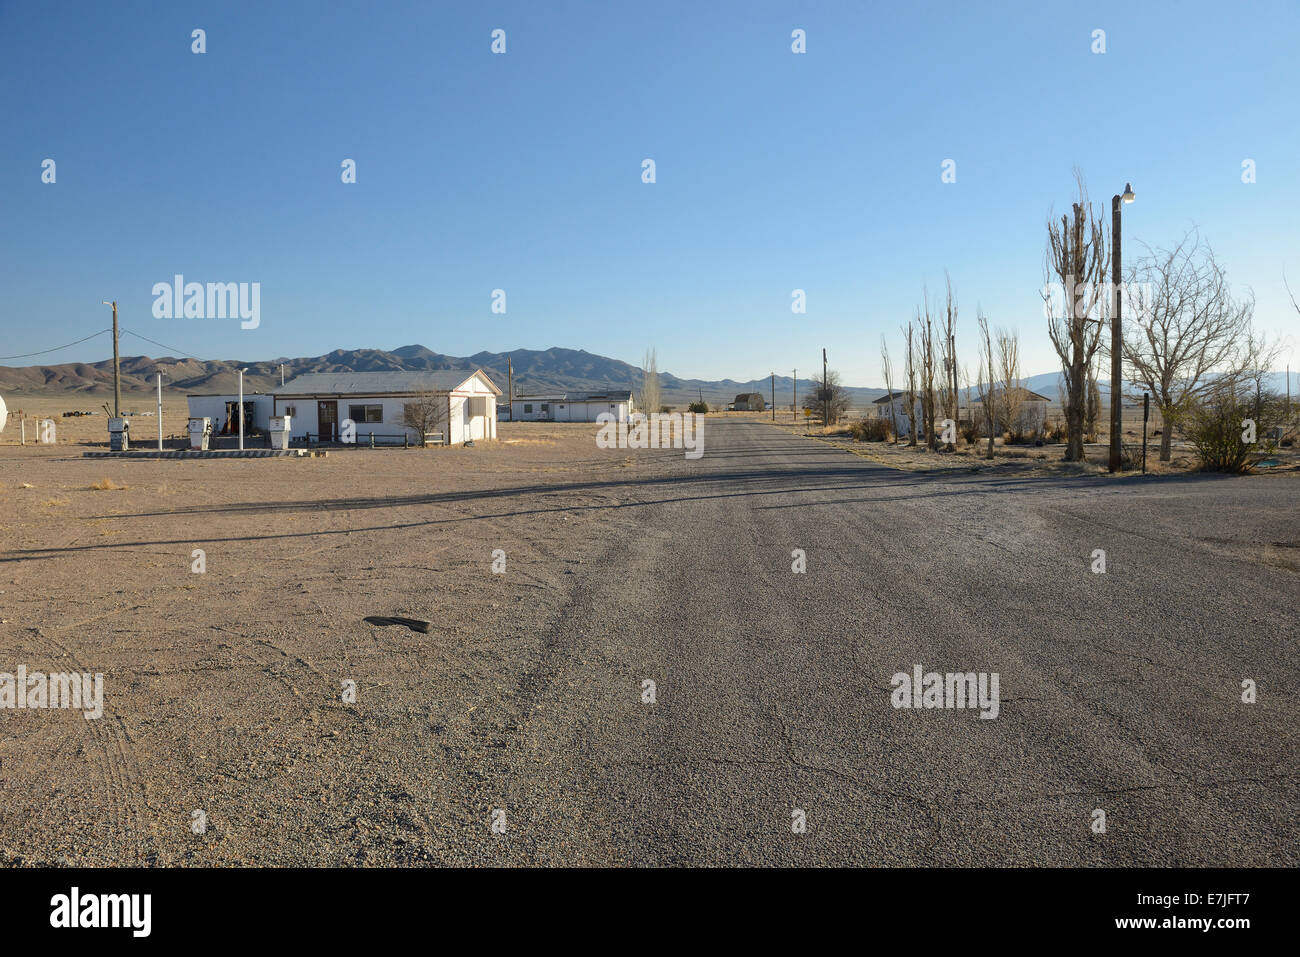 USA, United States, America, Nevada, Rachel, aliens, area 51, Ghost town, history, road, outback, america, town - Stock Image